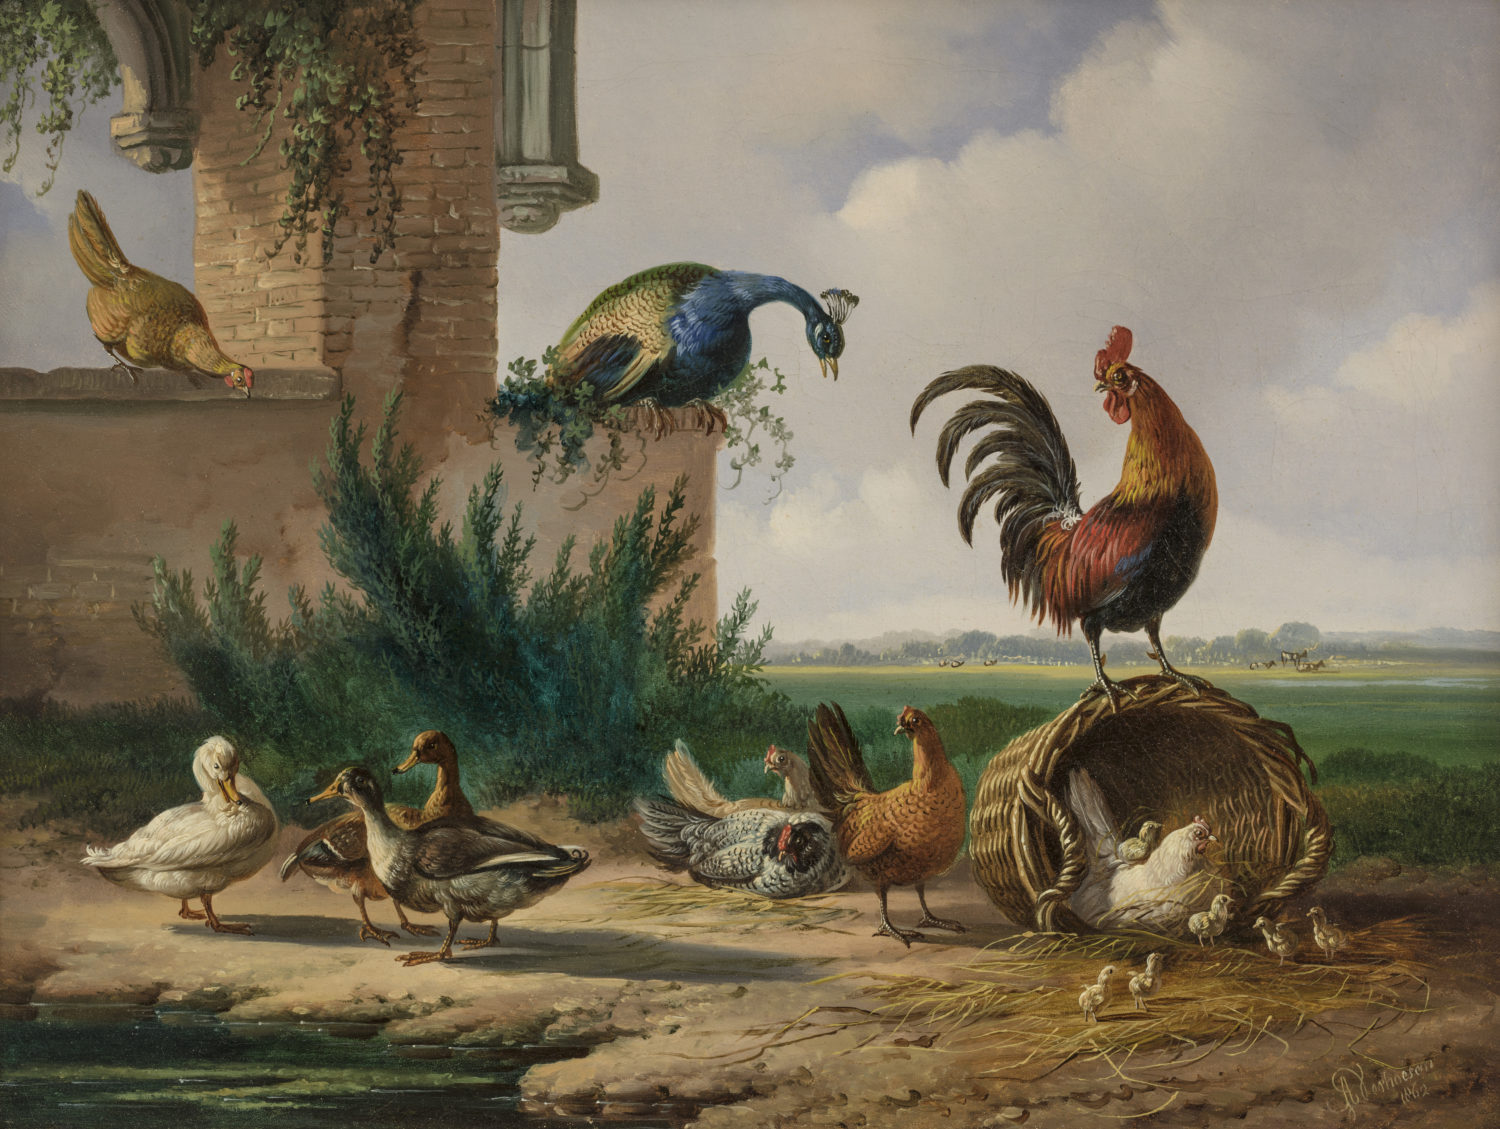 Albertus Verhoesen | A landscape with poultry (112)| Kunsthandel Bies | Bies Gallery